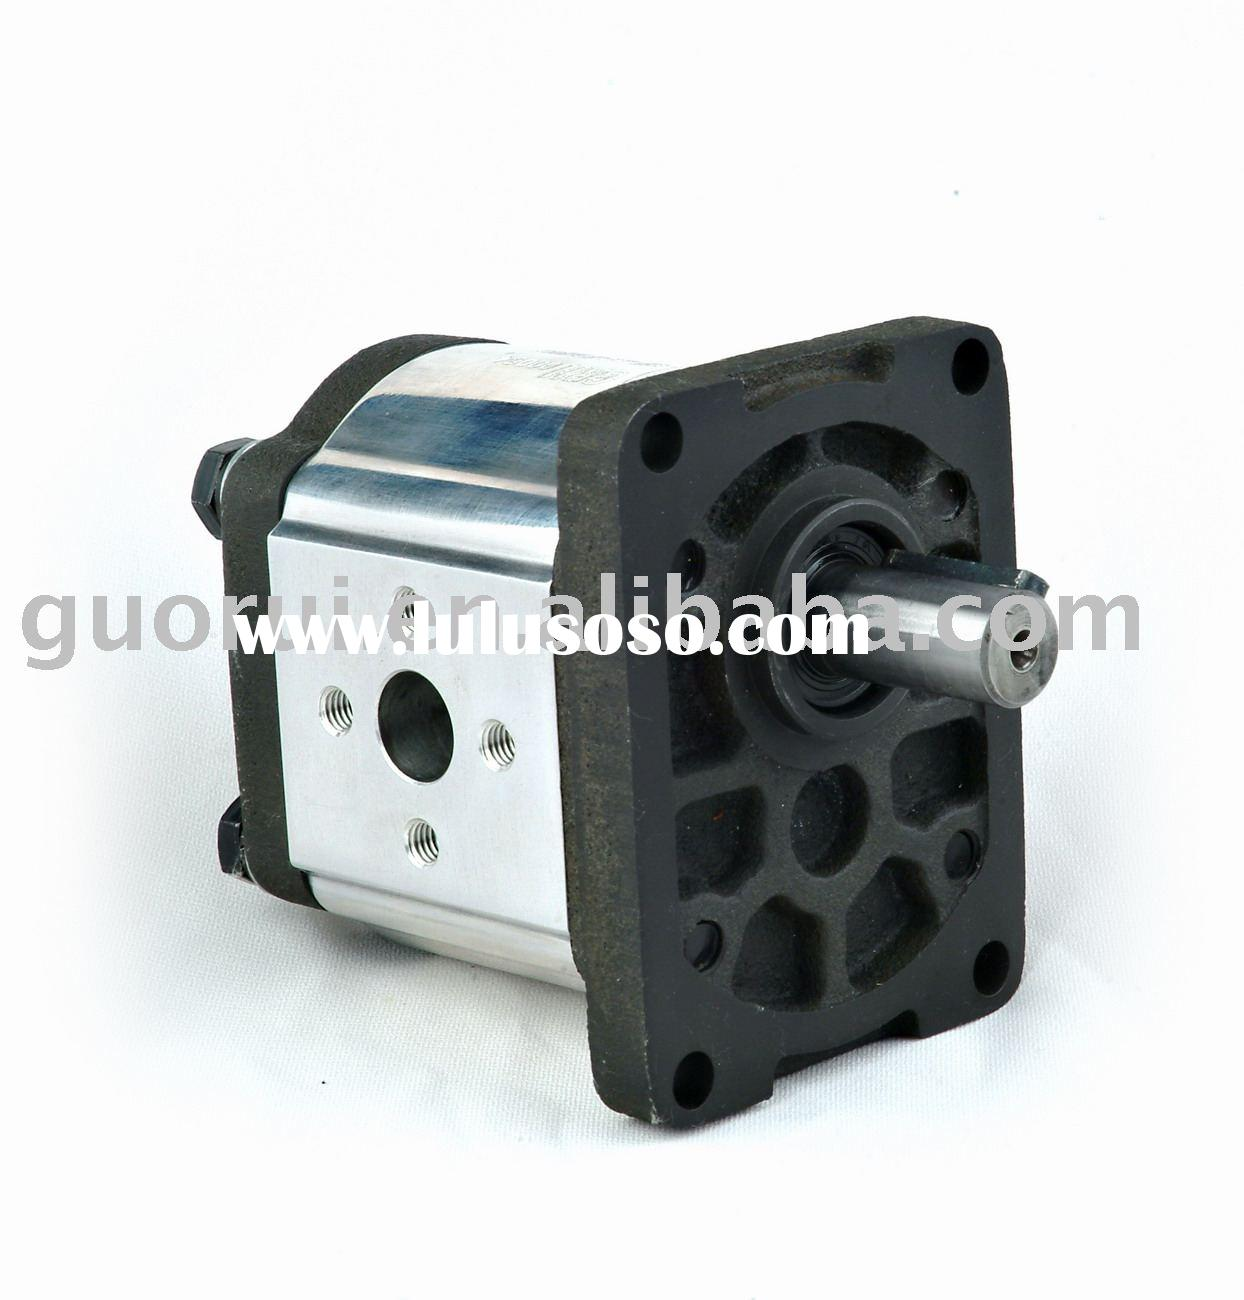 Hydraulic gear pump: